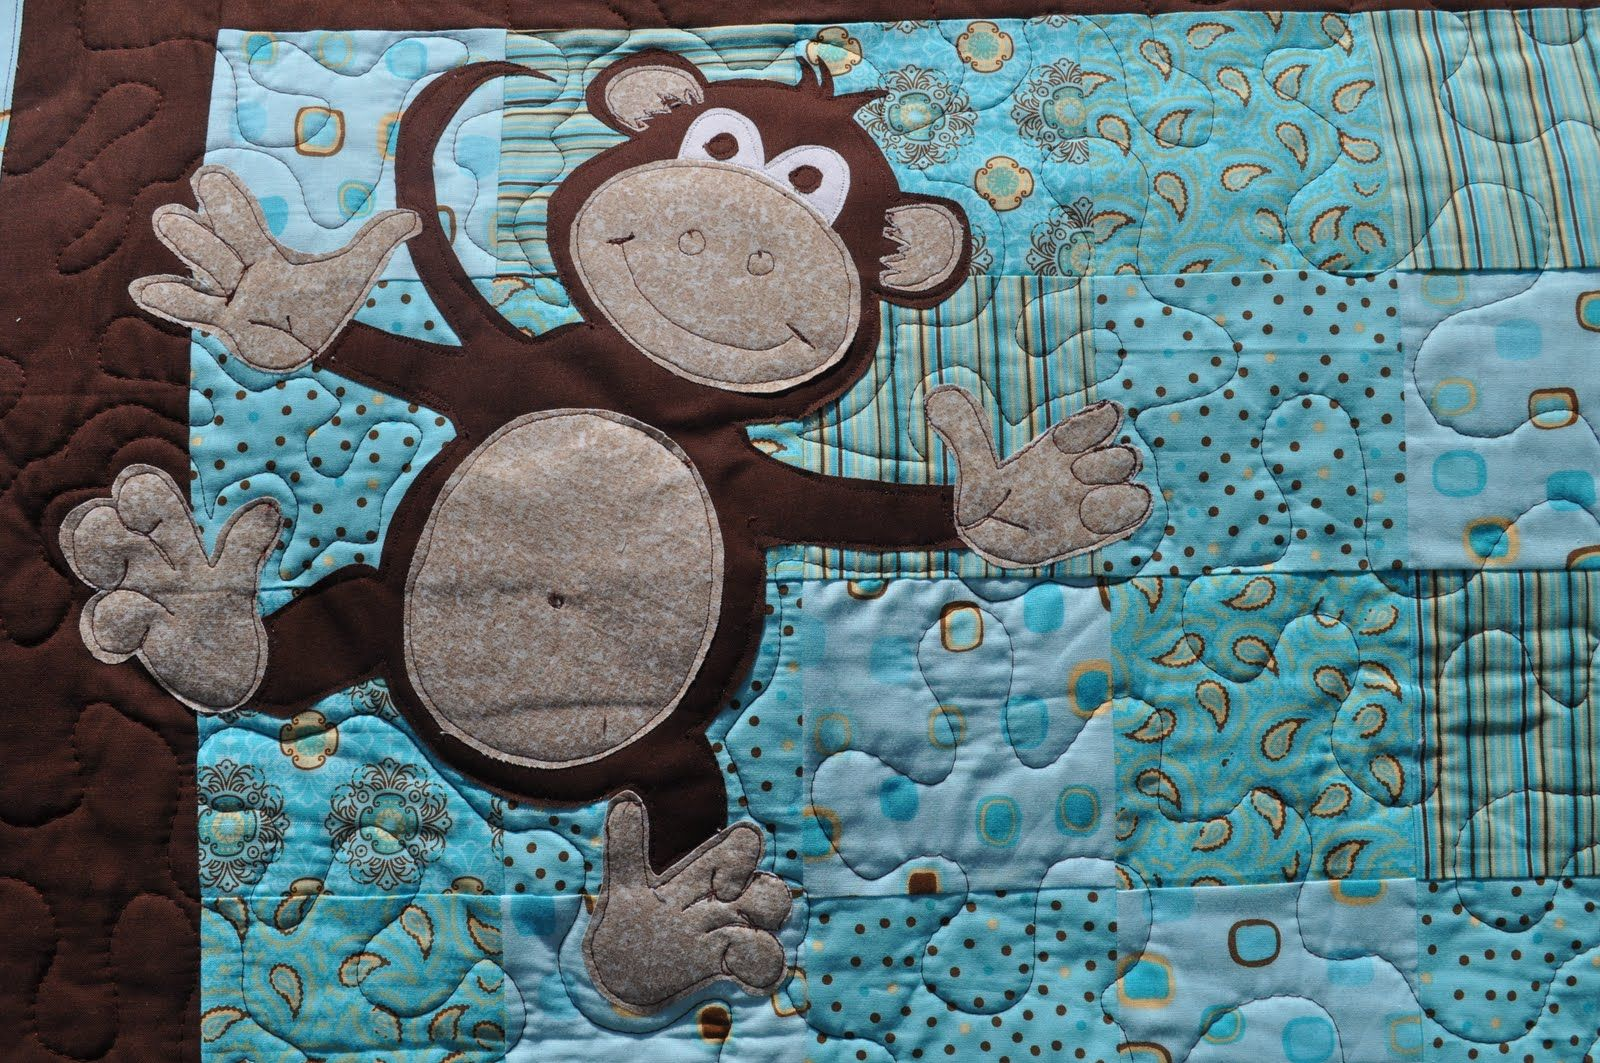 Monkey quilt pattern free distant pickles: making monkeys.. and